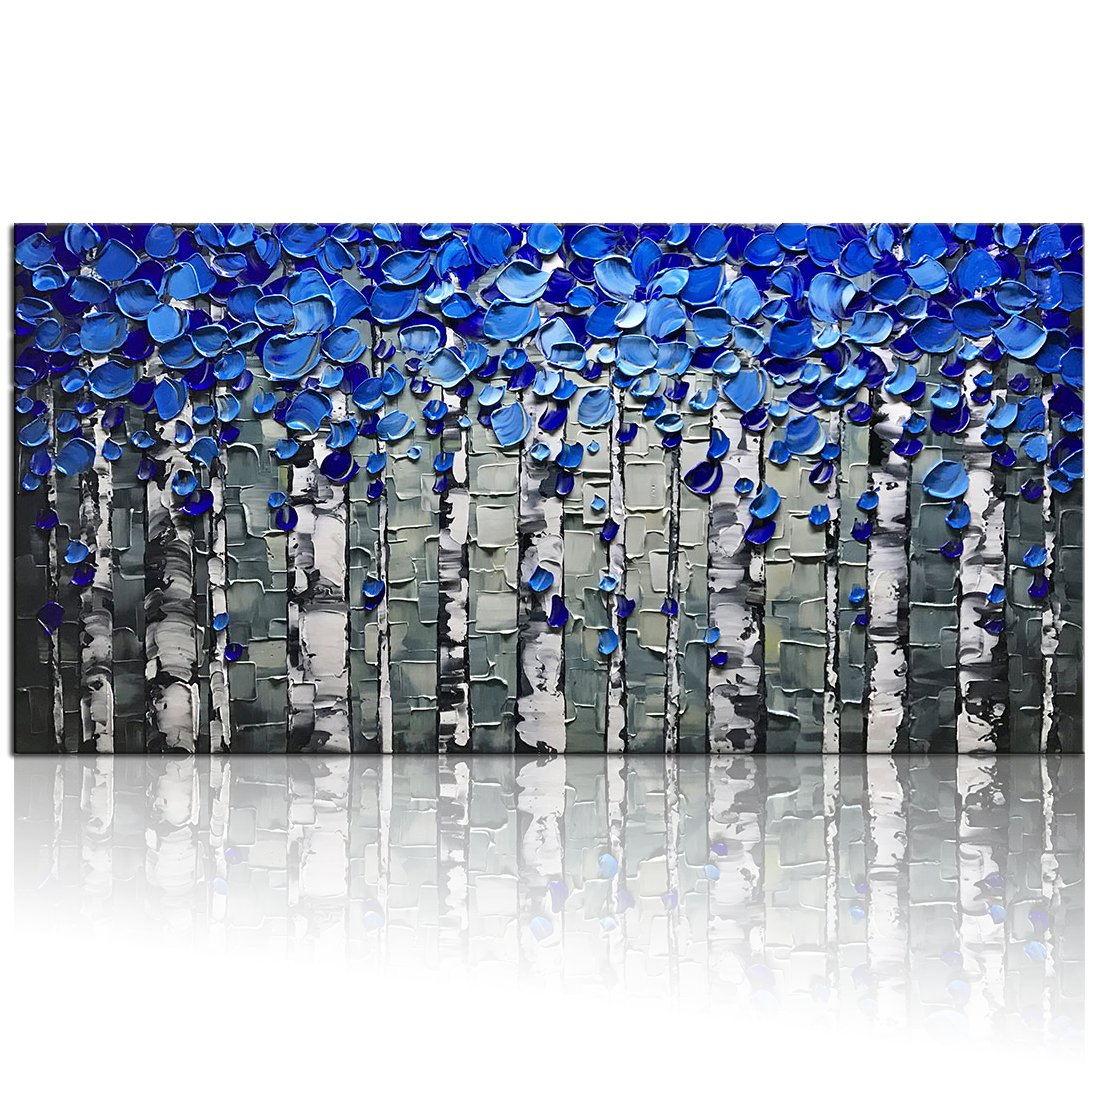 Desihum - Blue Birch Forest Wall Art On Canvas 3D Oil Painting Hand Painted Texture Abstract Artwork For Living Room Office Bedroom Hotel Home Decor Tree Landscape Picture Frame For Wall(24''x48'') by Desihum